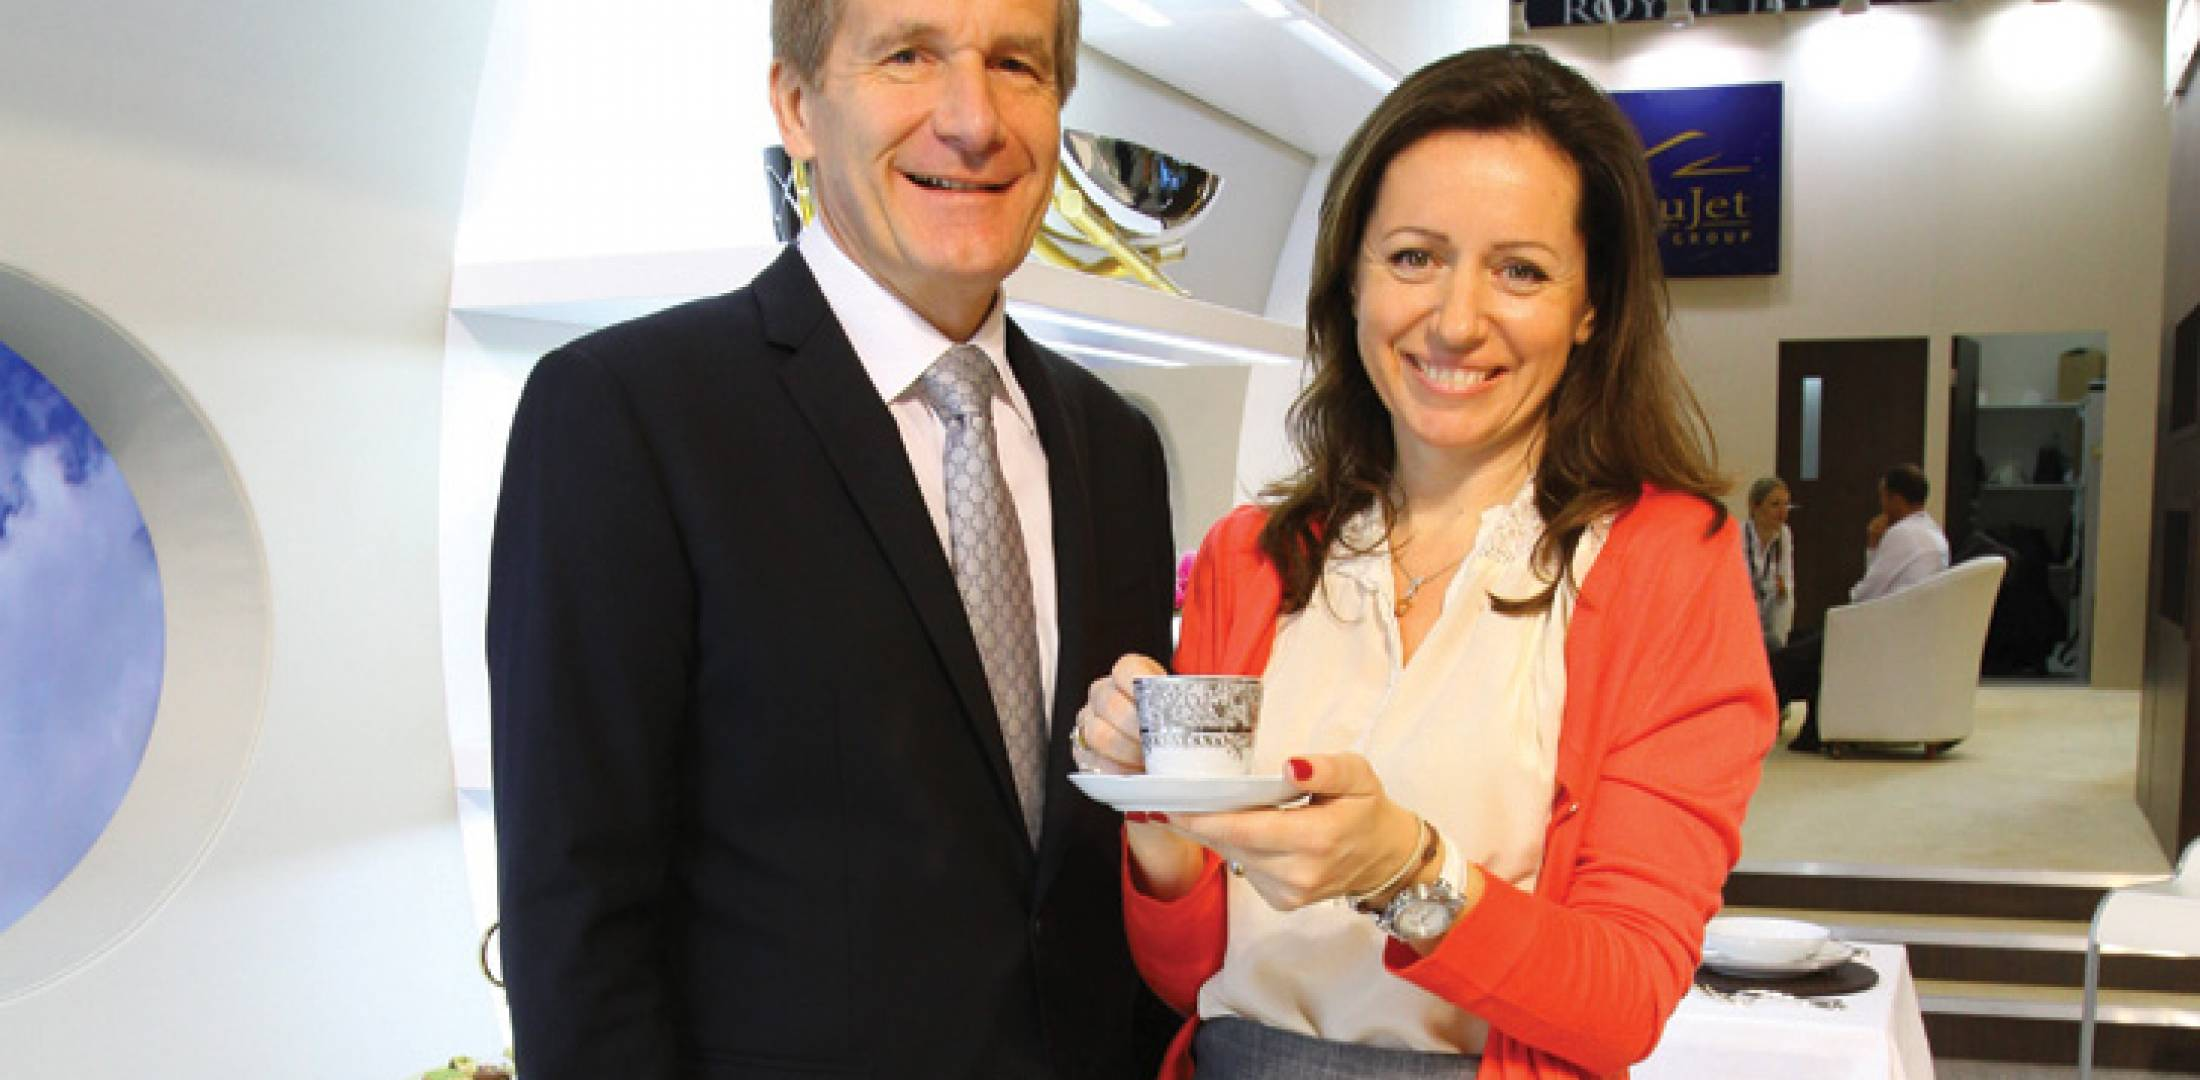 Thierry and Daniela Boutsen celebrate their company's 251st aircraft sale, and its new design department, at MEBA 2012.